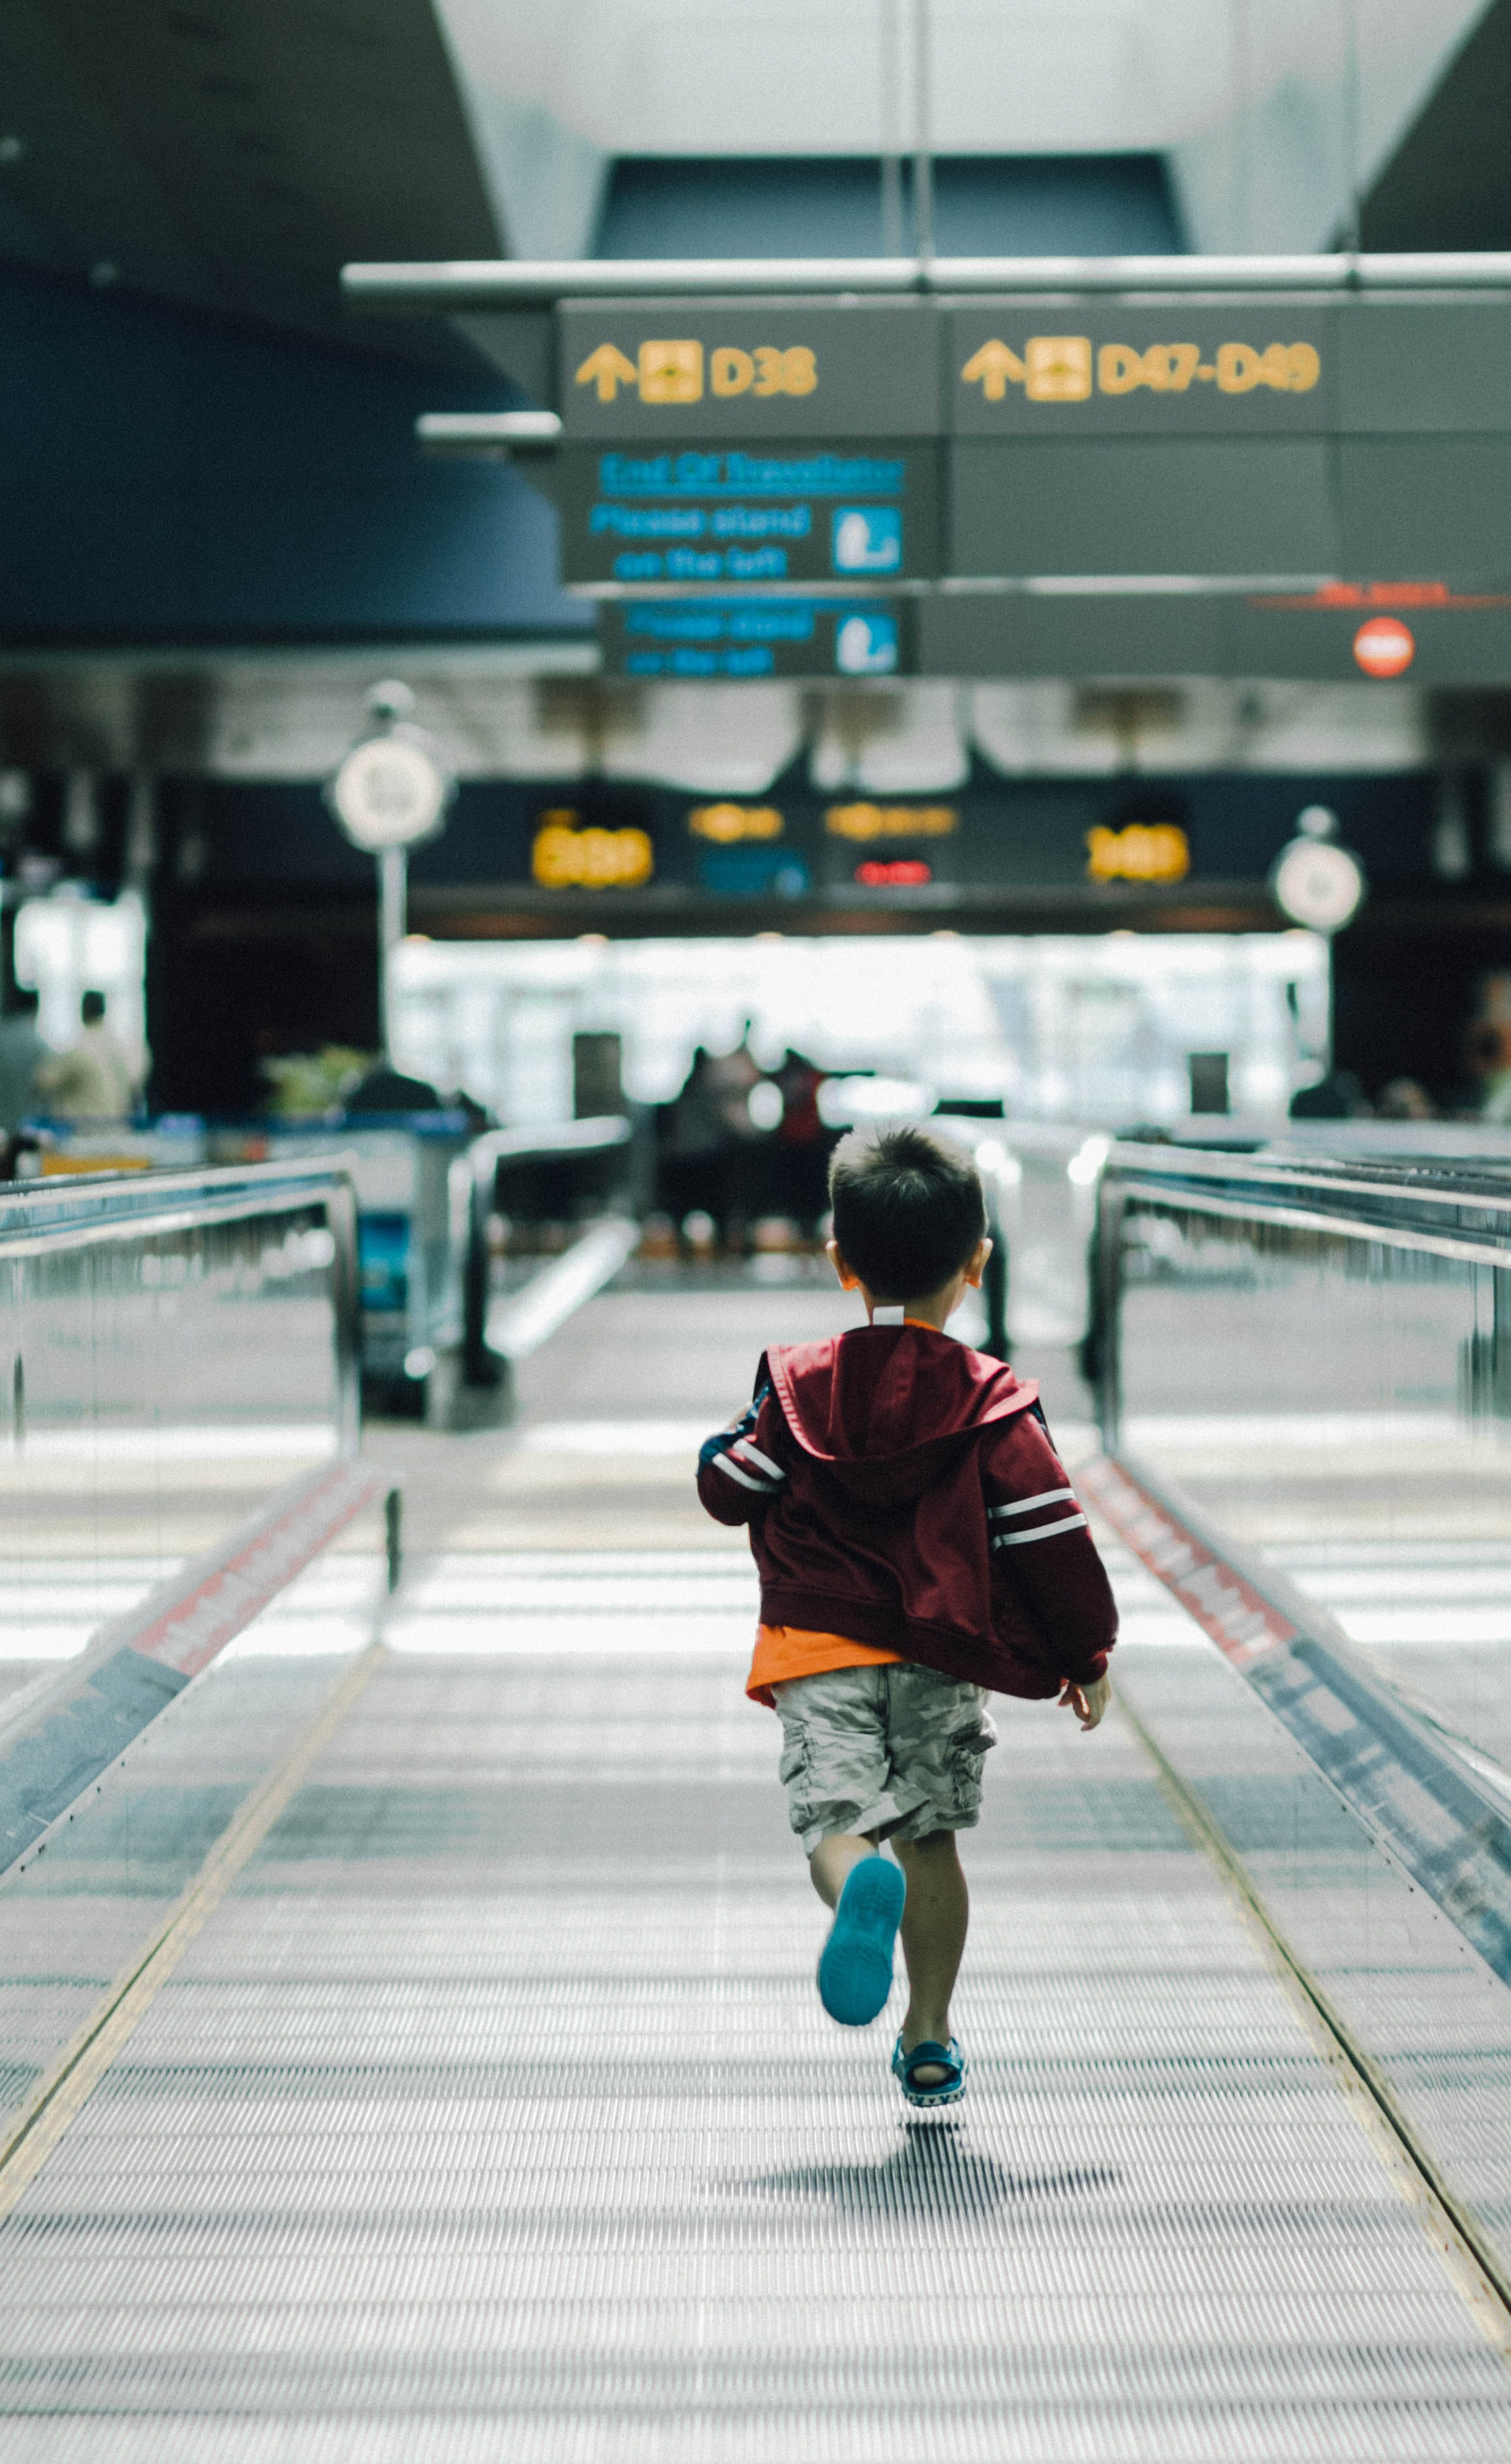 A small boy running at the airport